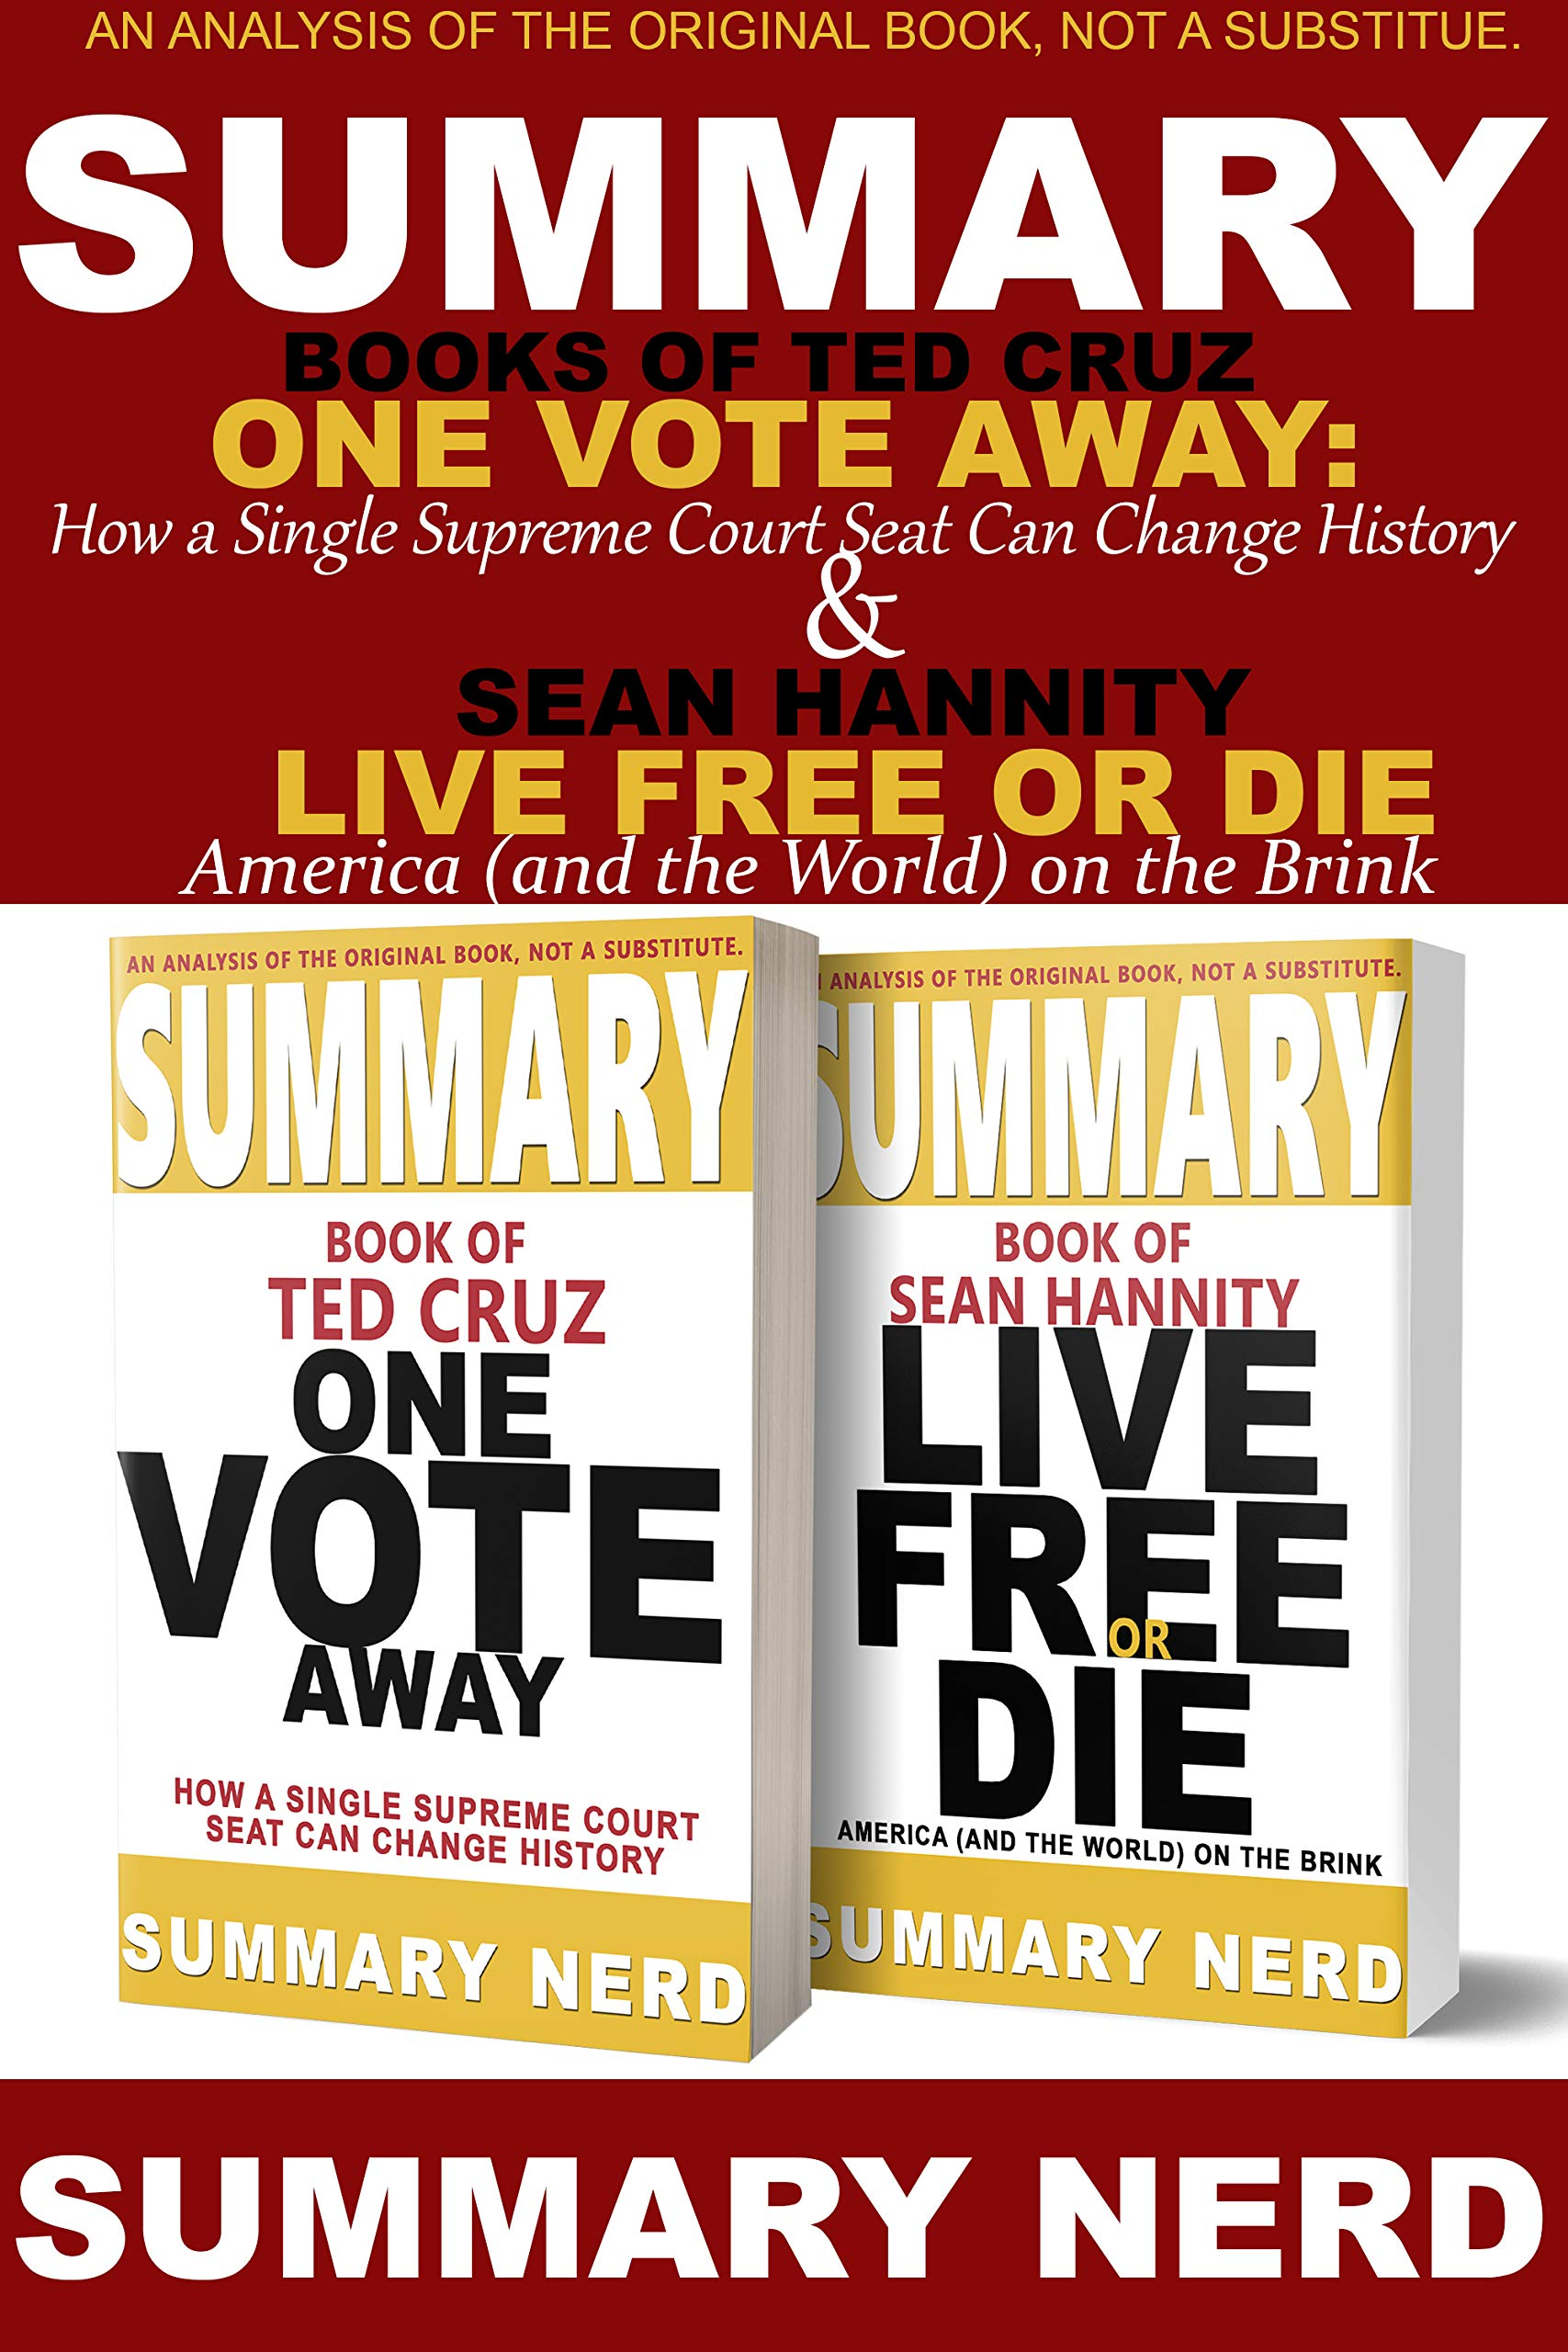 SUMMARY BOOKS OF TED CRUZ ONE VOTE AWAY – How a Single Supreme Court Seat Can Change History & SEAN HANNITY LIVE FREE OR DIE - America (and the World) on the Brink (Bundle Summary Book 3)